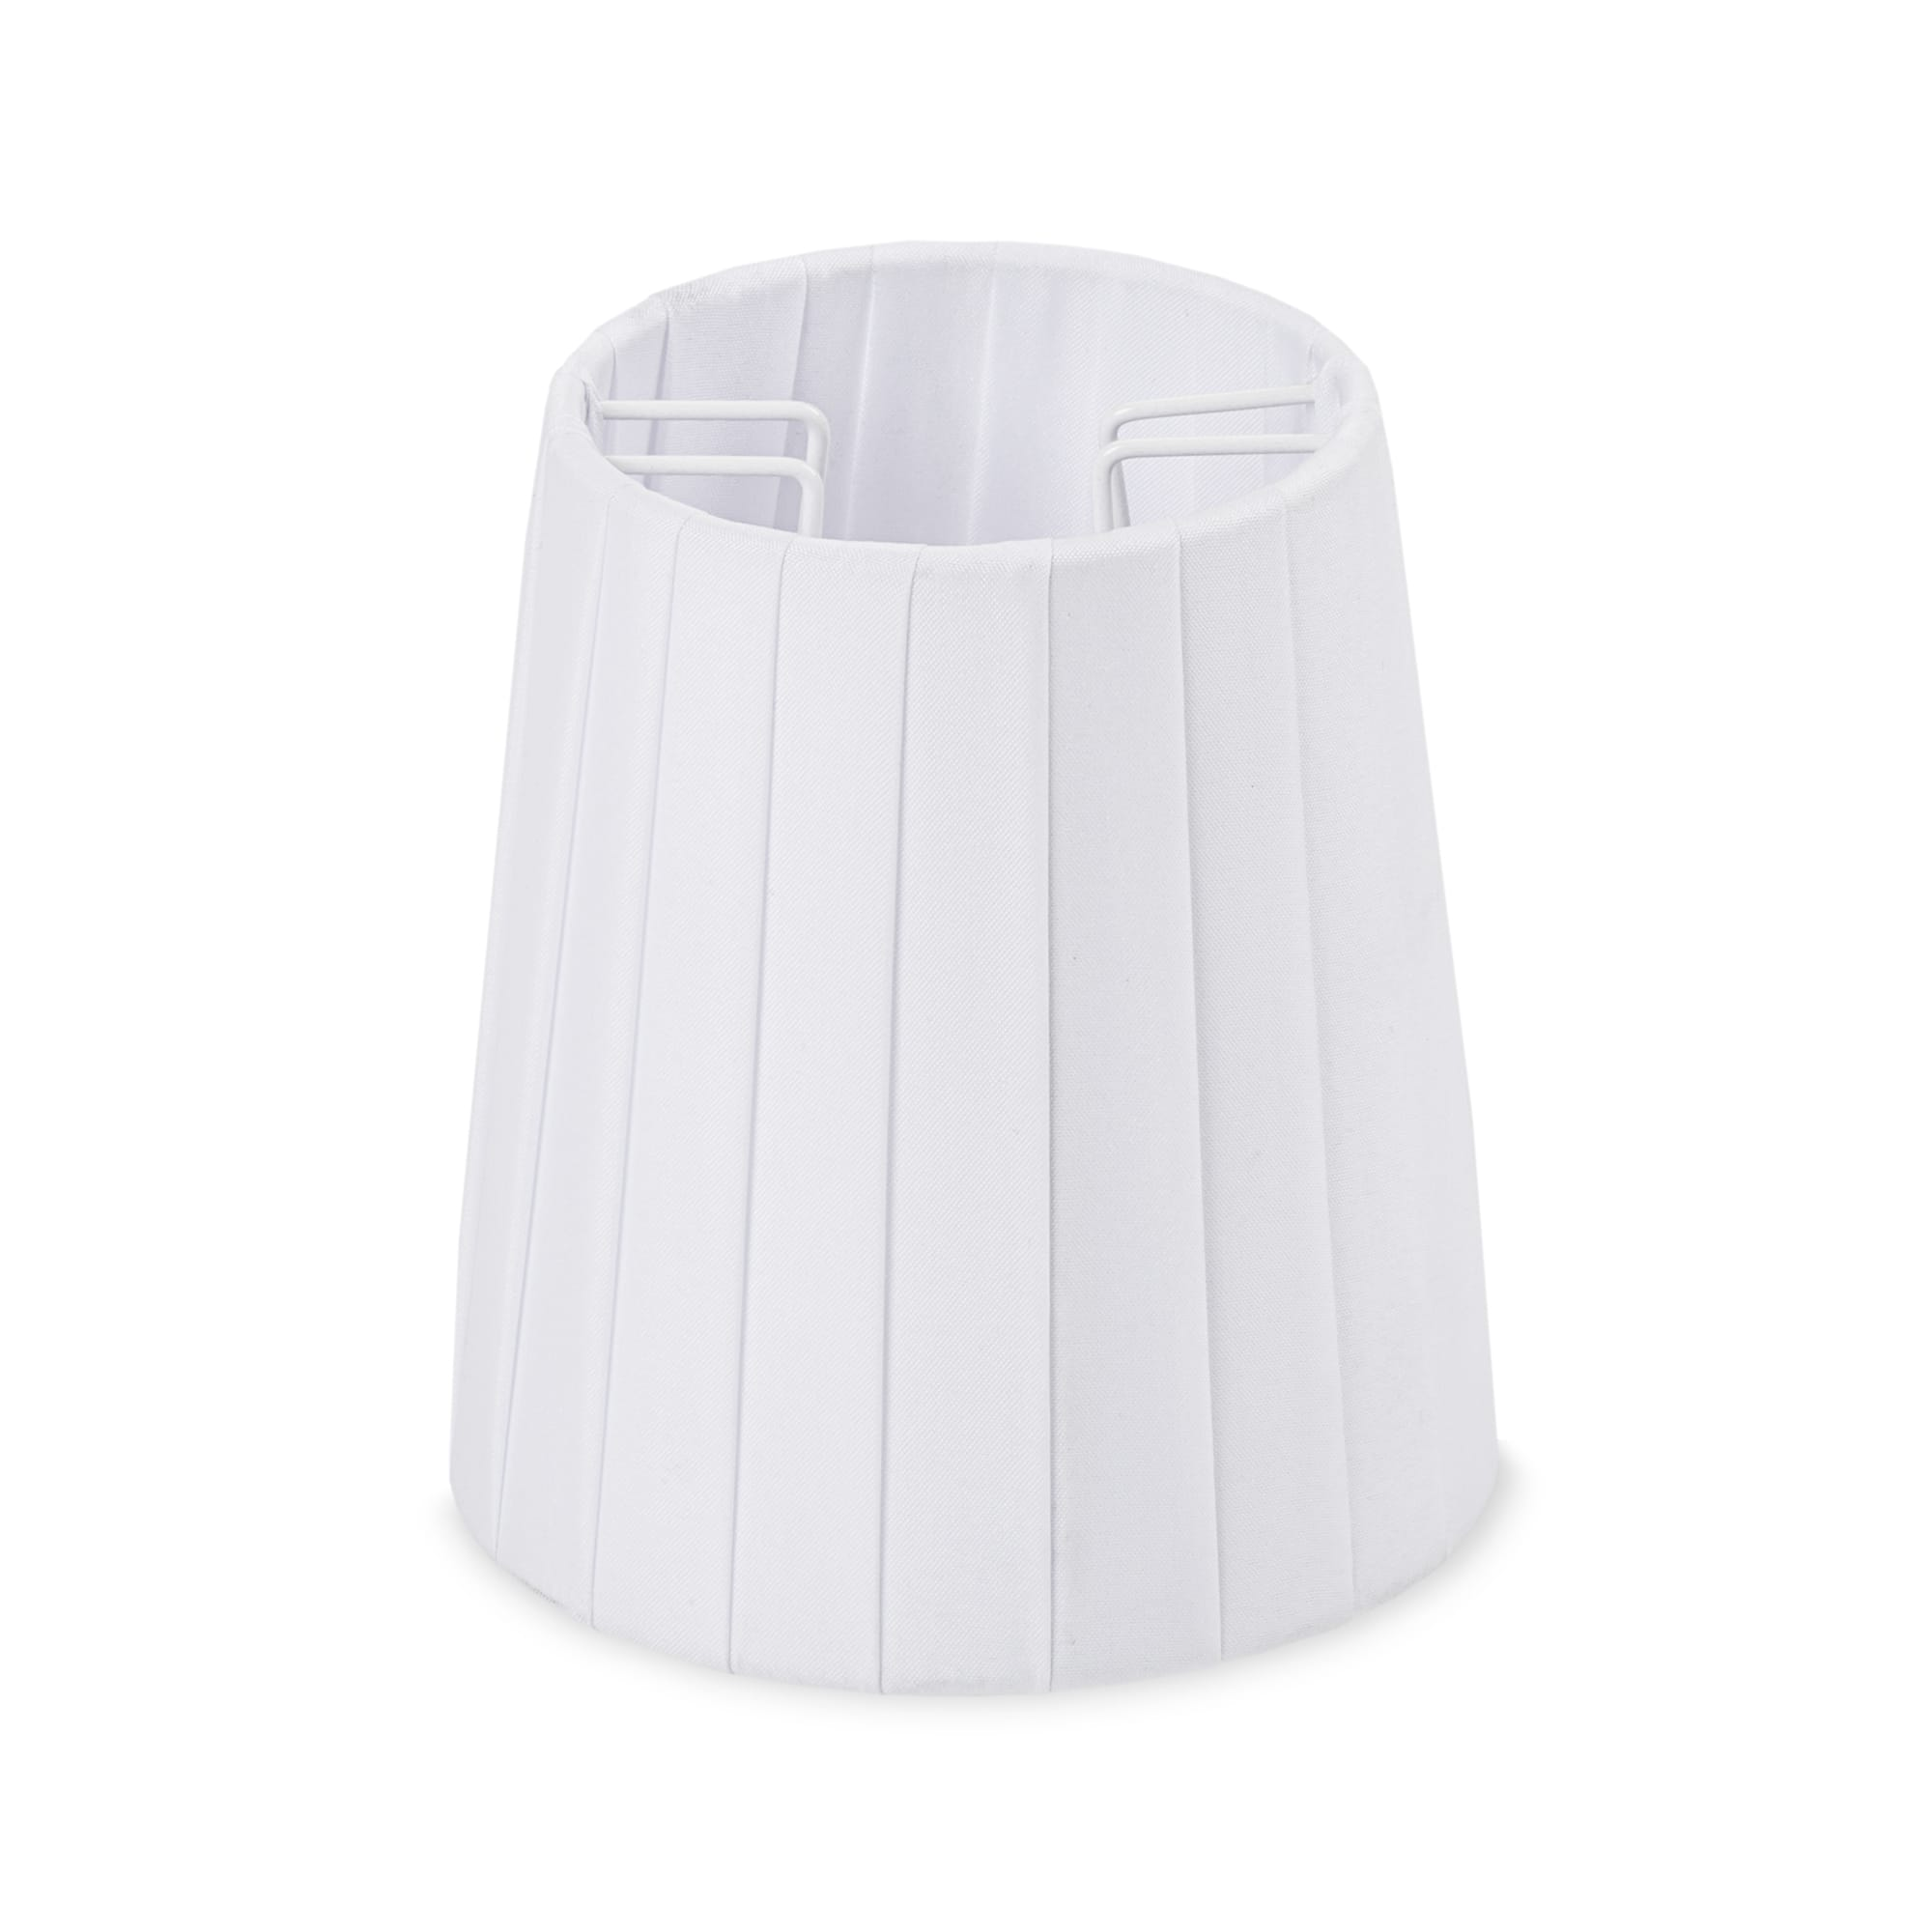 White Metal Polyester Lampshade for White Monkey Lamp